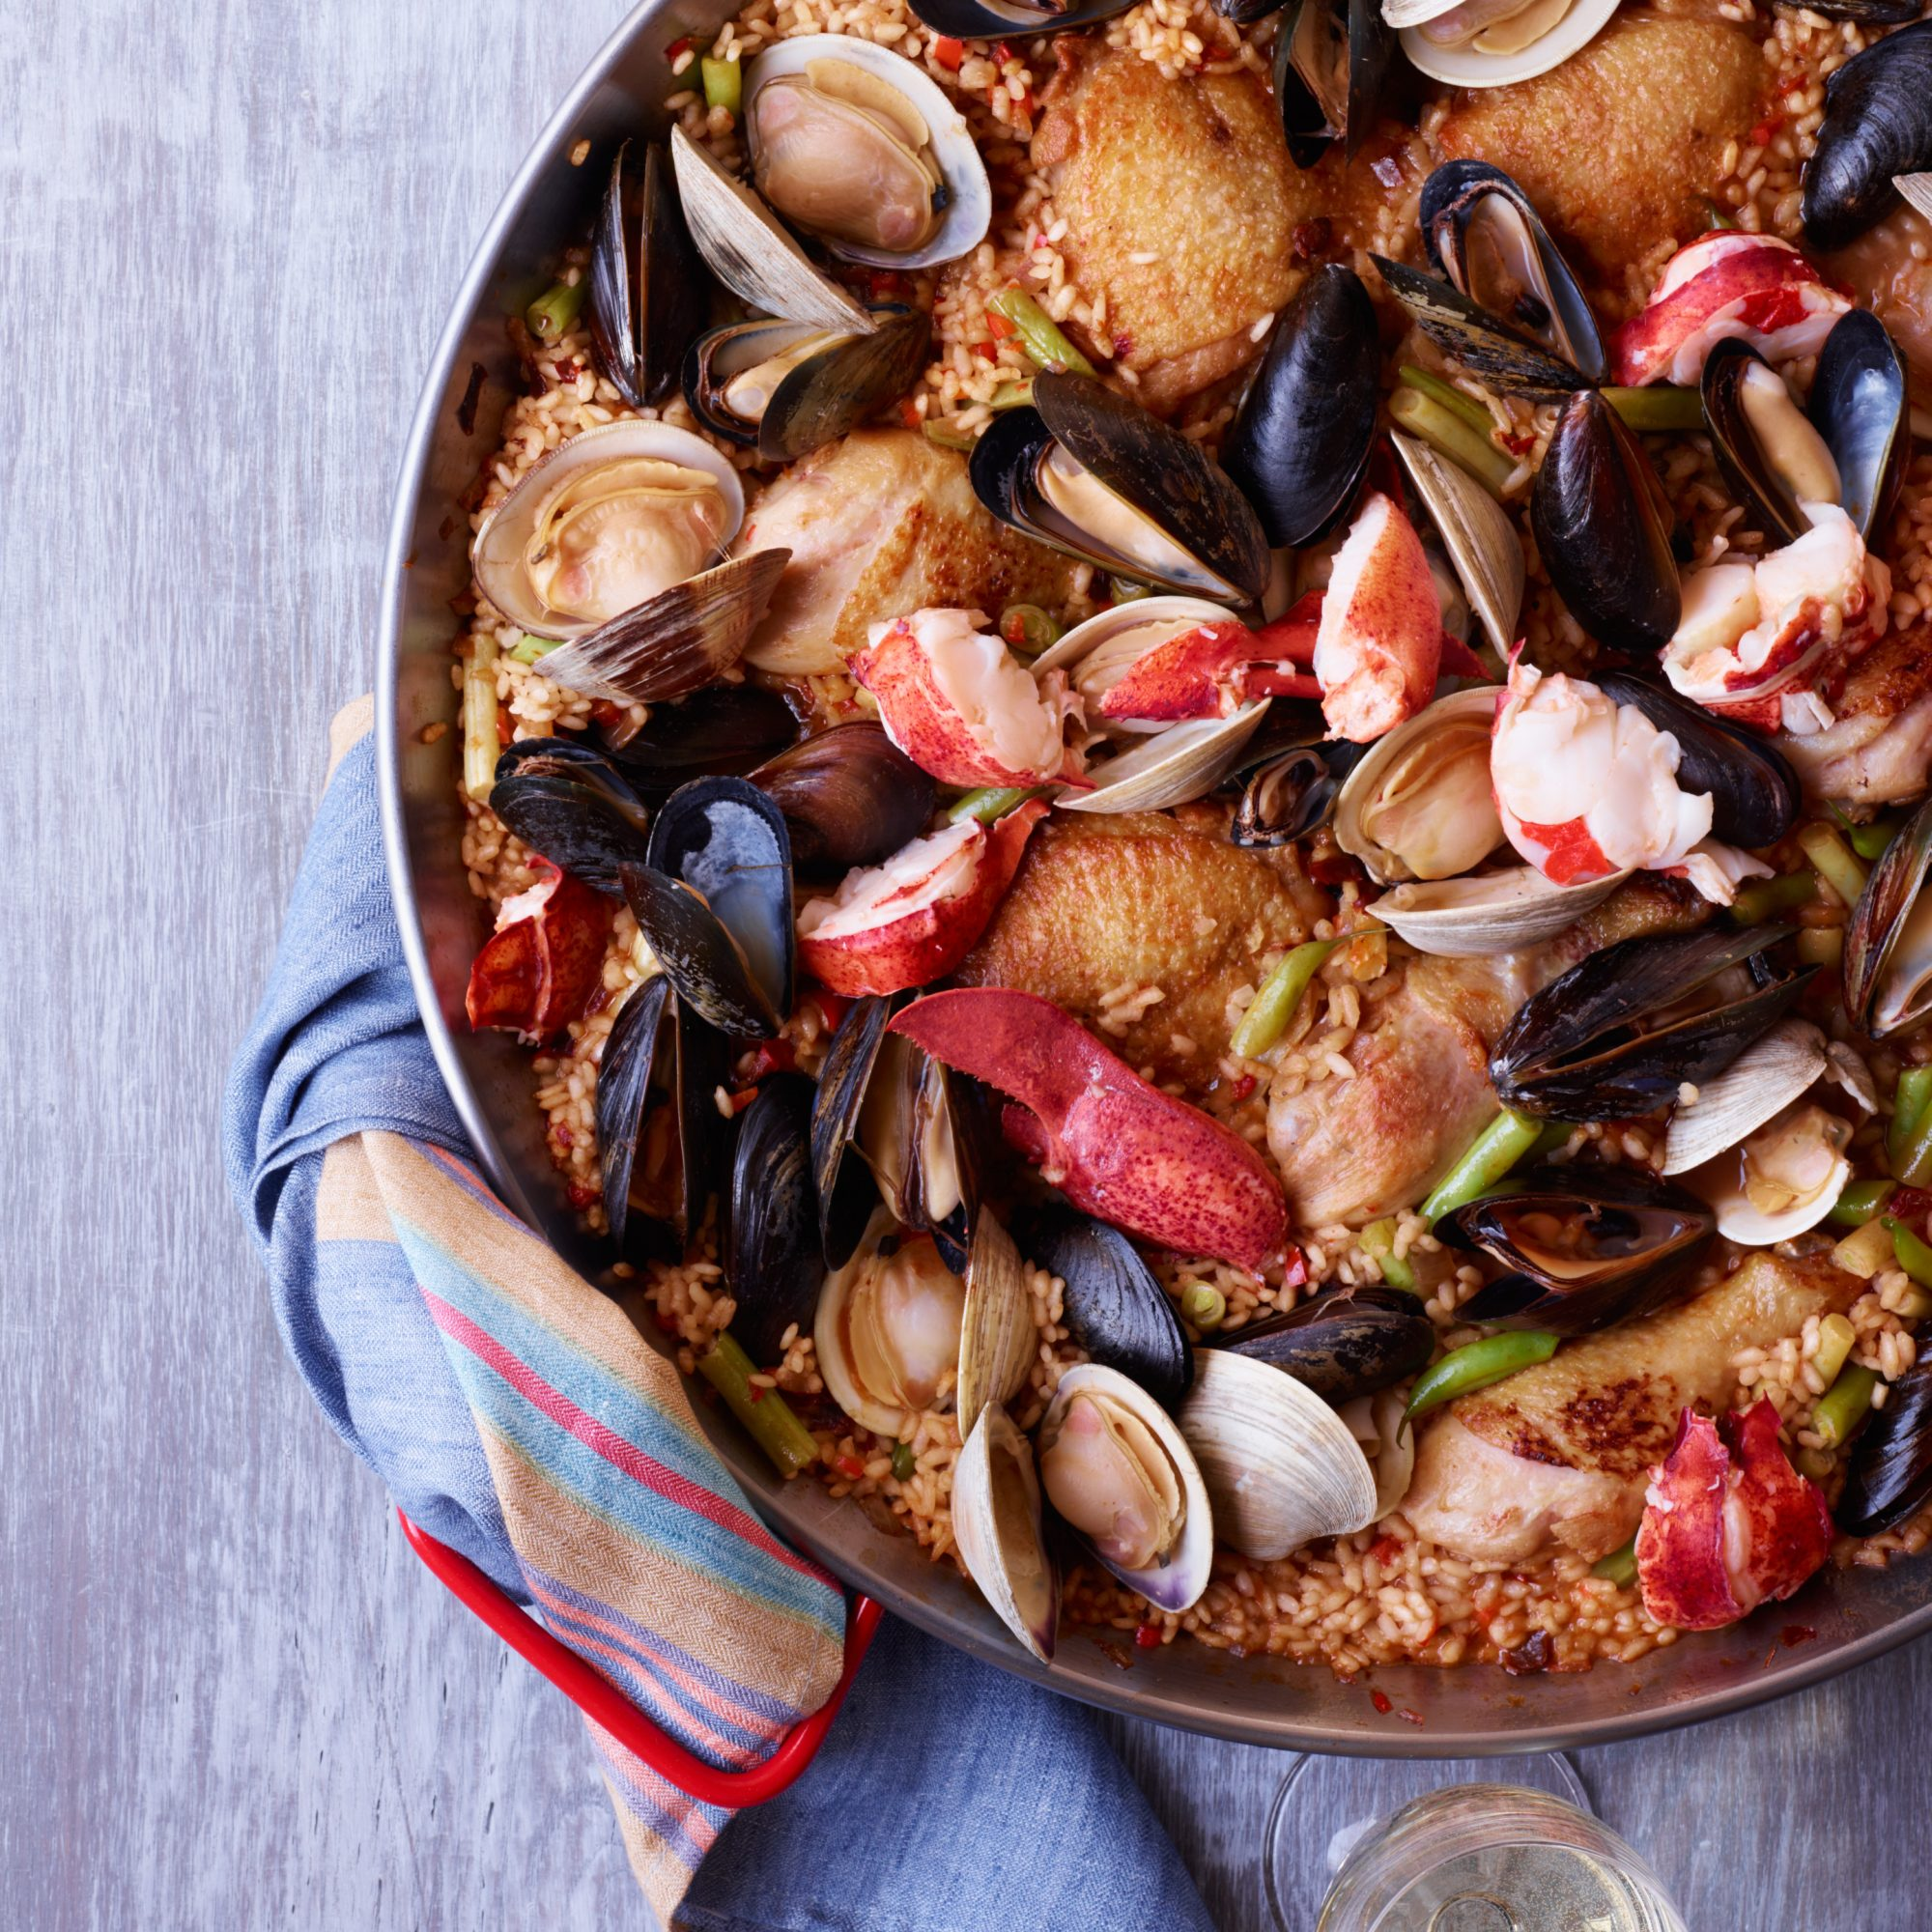 Summer Grilling: How to Make Paella